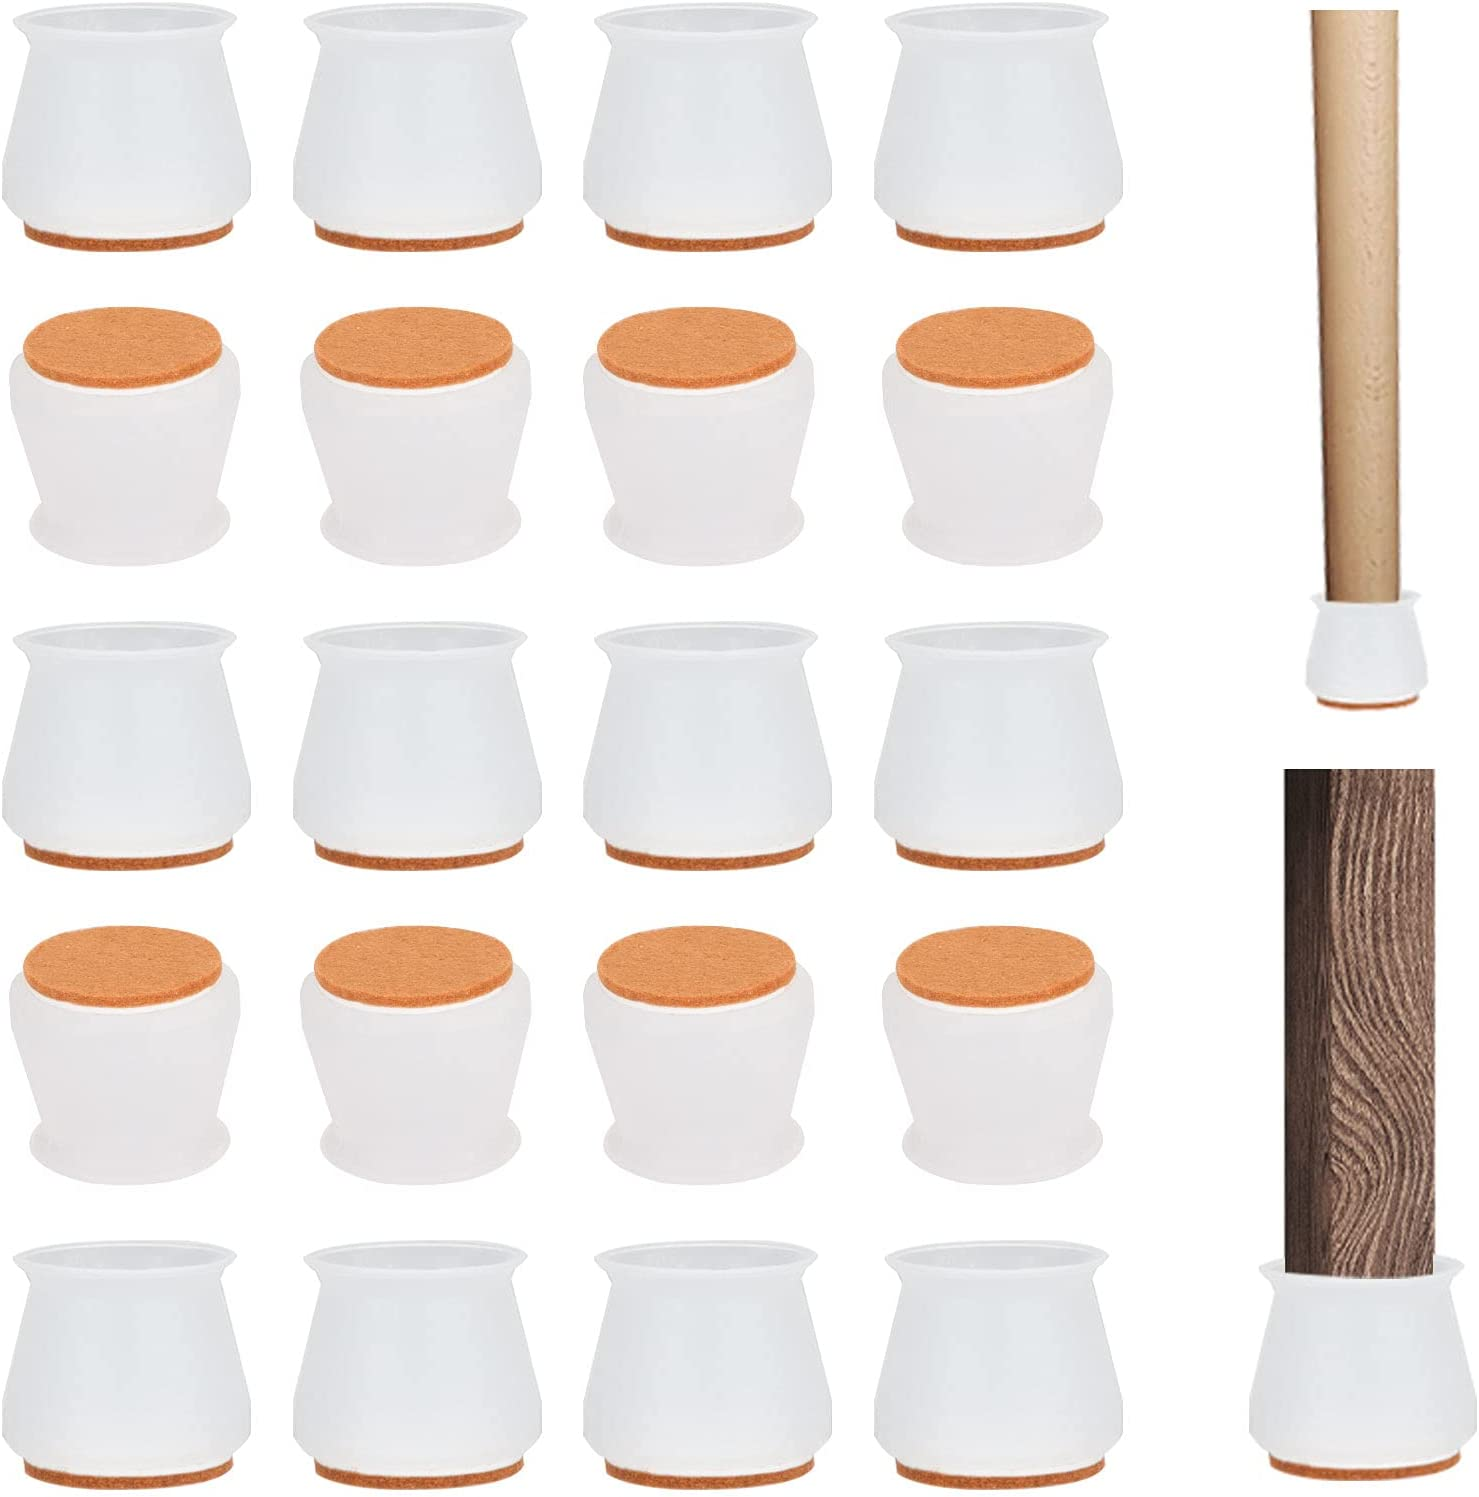 20 Pcs Silicone Chair Leg Floor Protectors with Felt, Chair Leg Caps, Silicon Furniture Leg Feet Protection Cover Protect Hardwood Floor and Reduce Noise (20, Small Fit: 0.7